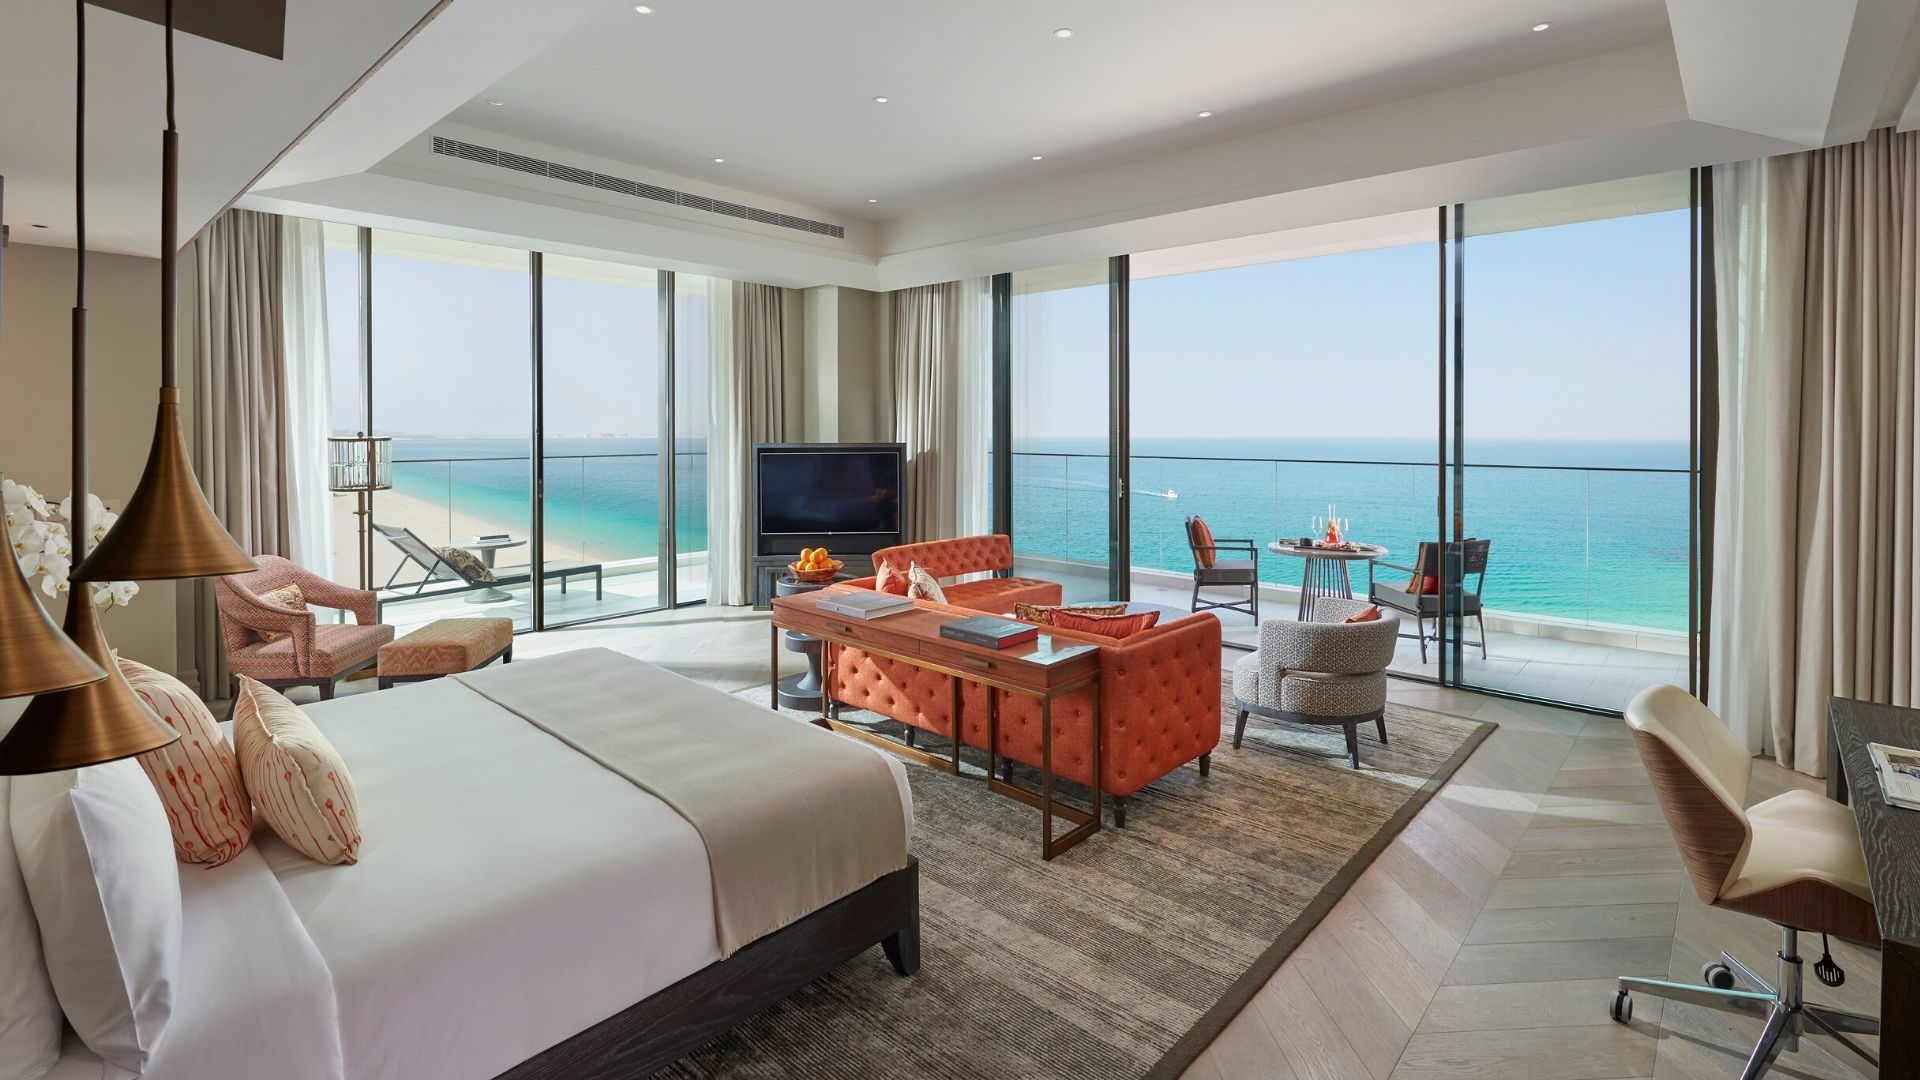 The Escape | Suite Dreams At The Mandarin Oriental Jumeira, Dubai